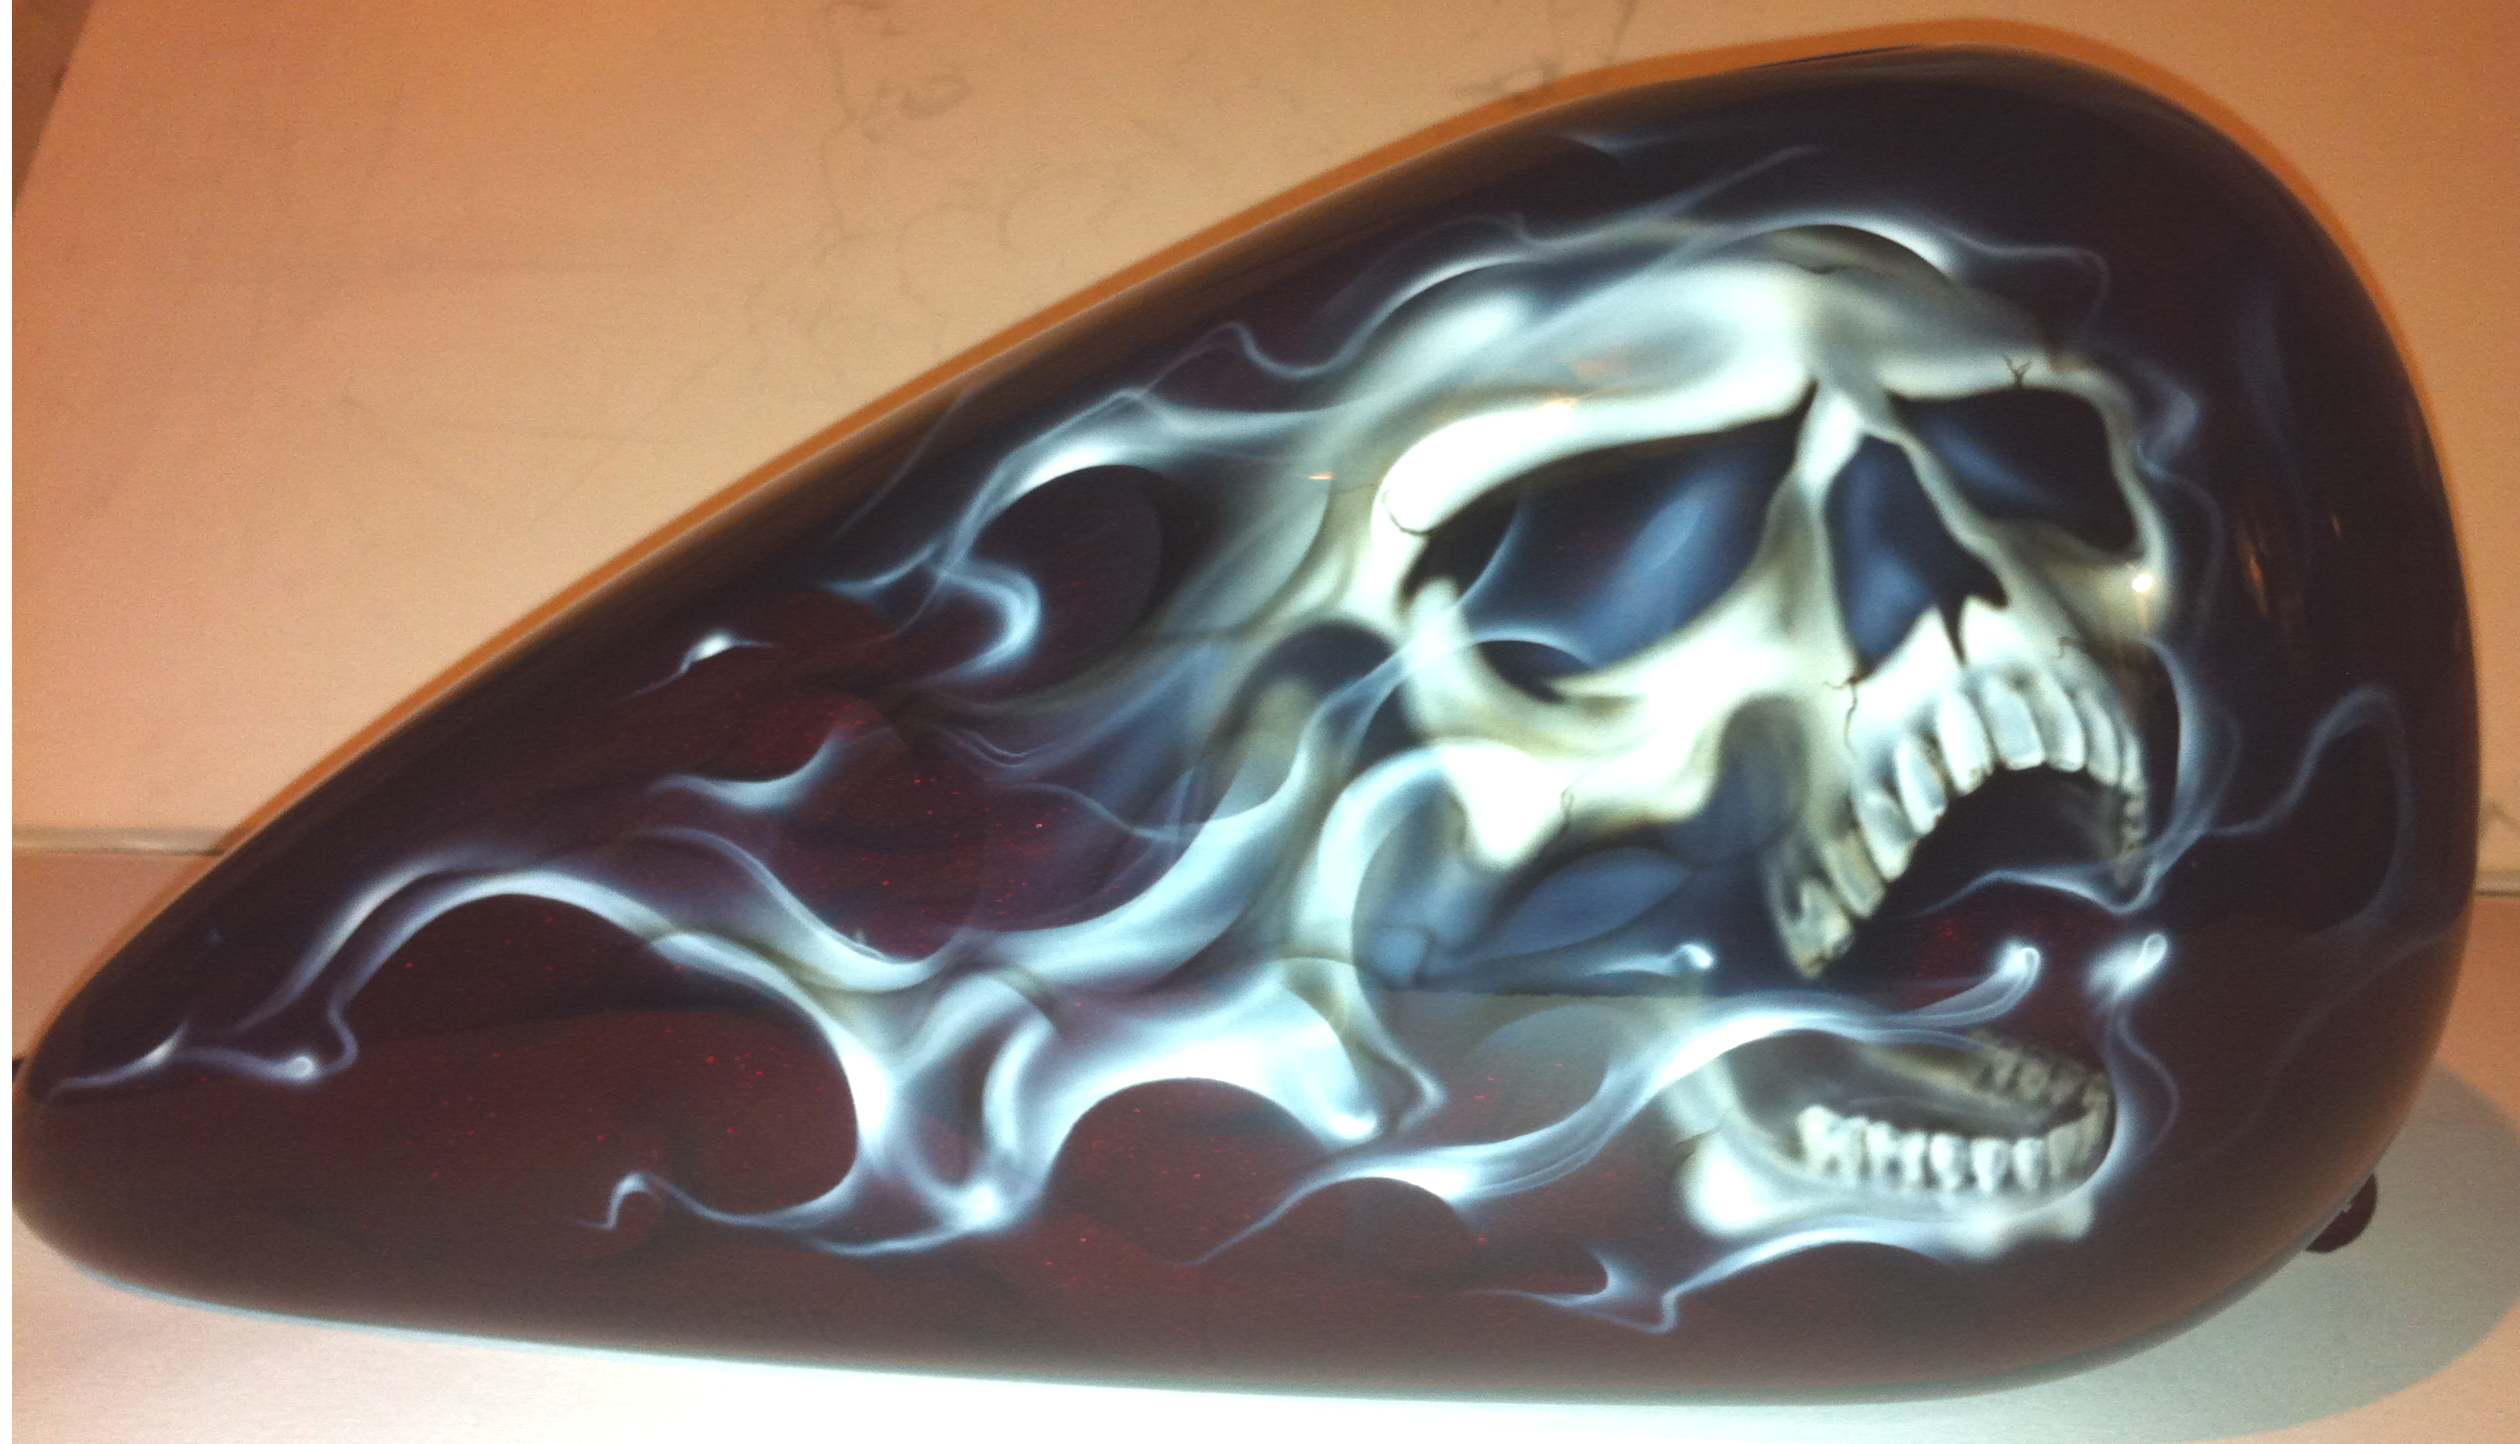 Skull Paint Jobs On Motorcycles 2520 x 1444 · 1588 kB · jpeg